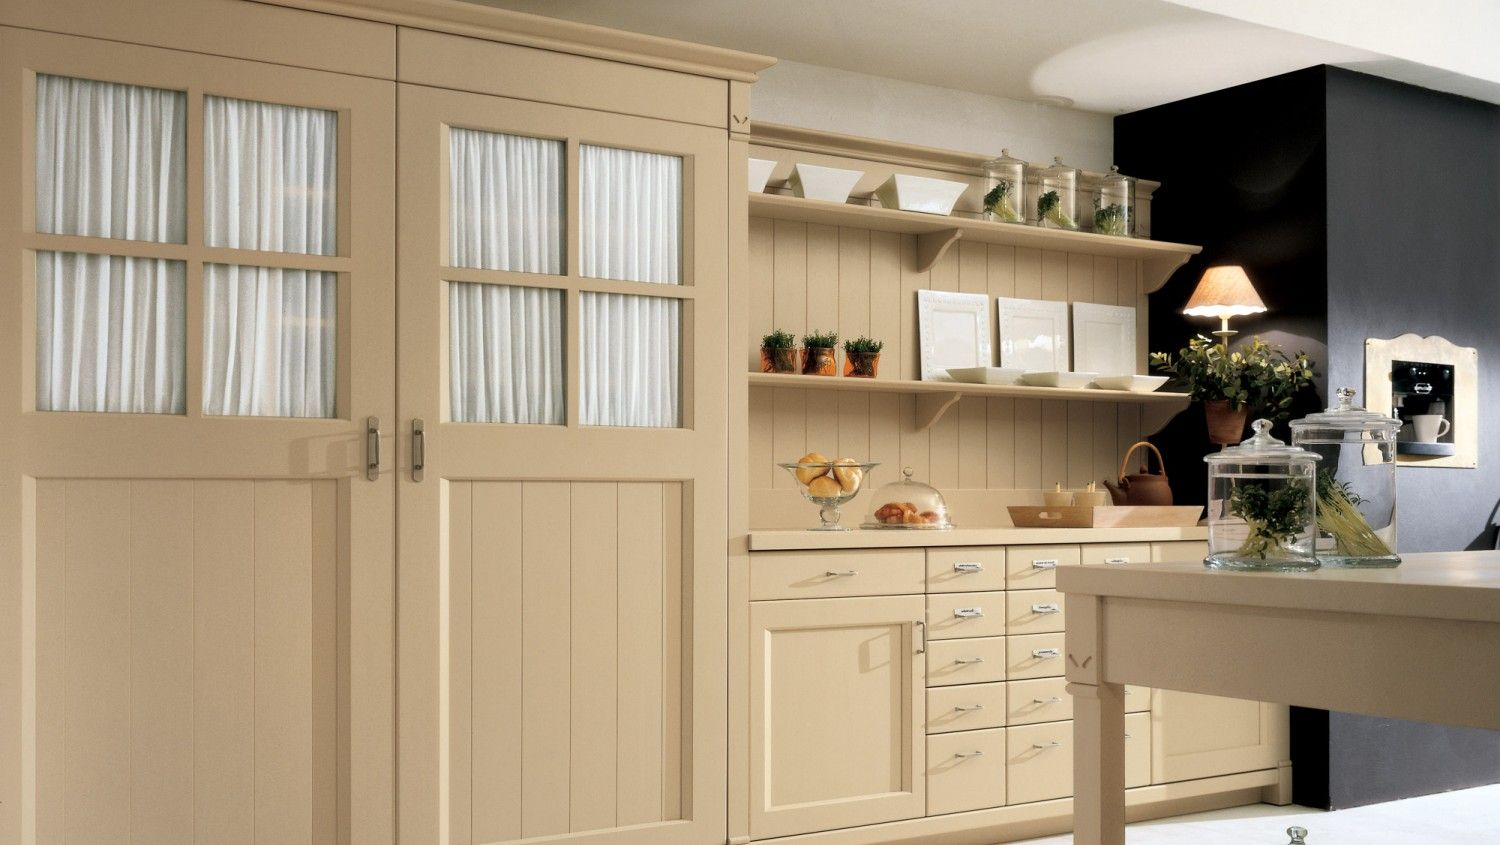 Cucina A Gas Stile Country Cucina In Stile Country Chic, Finitura Canapa. Parete